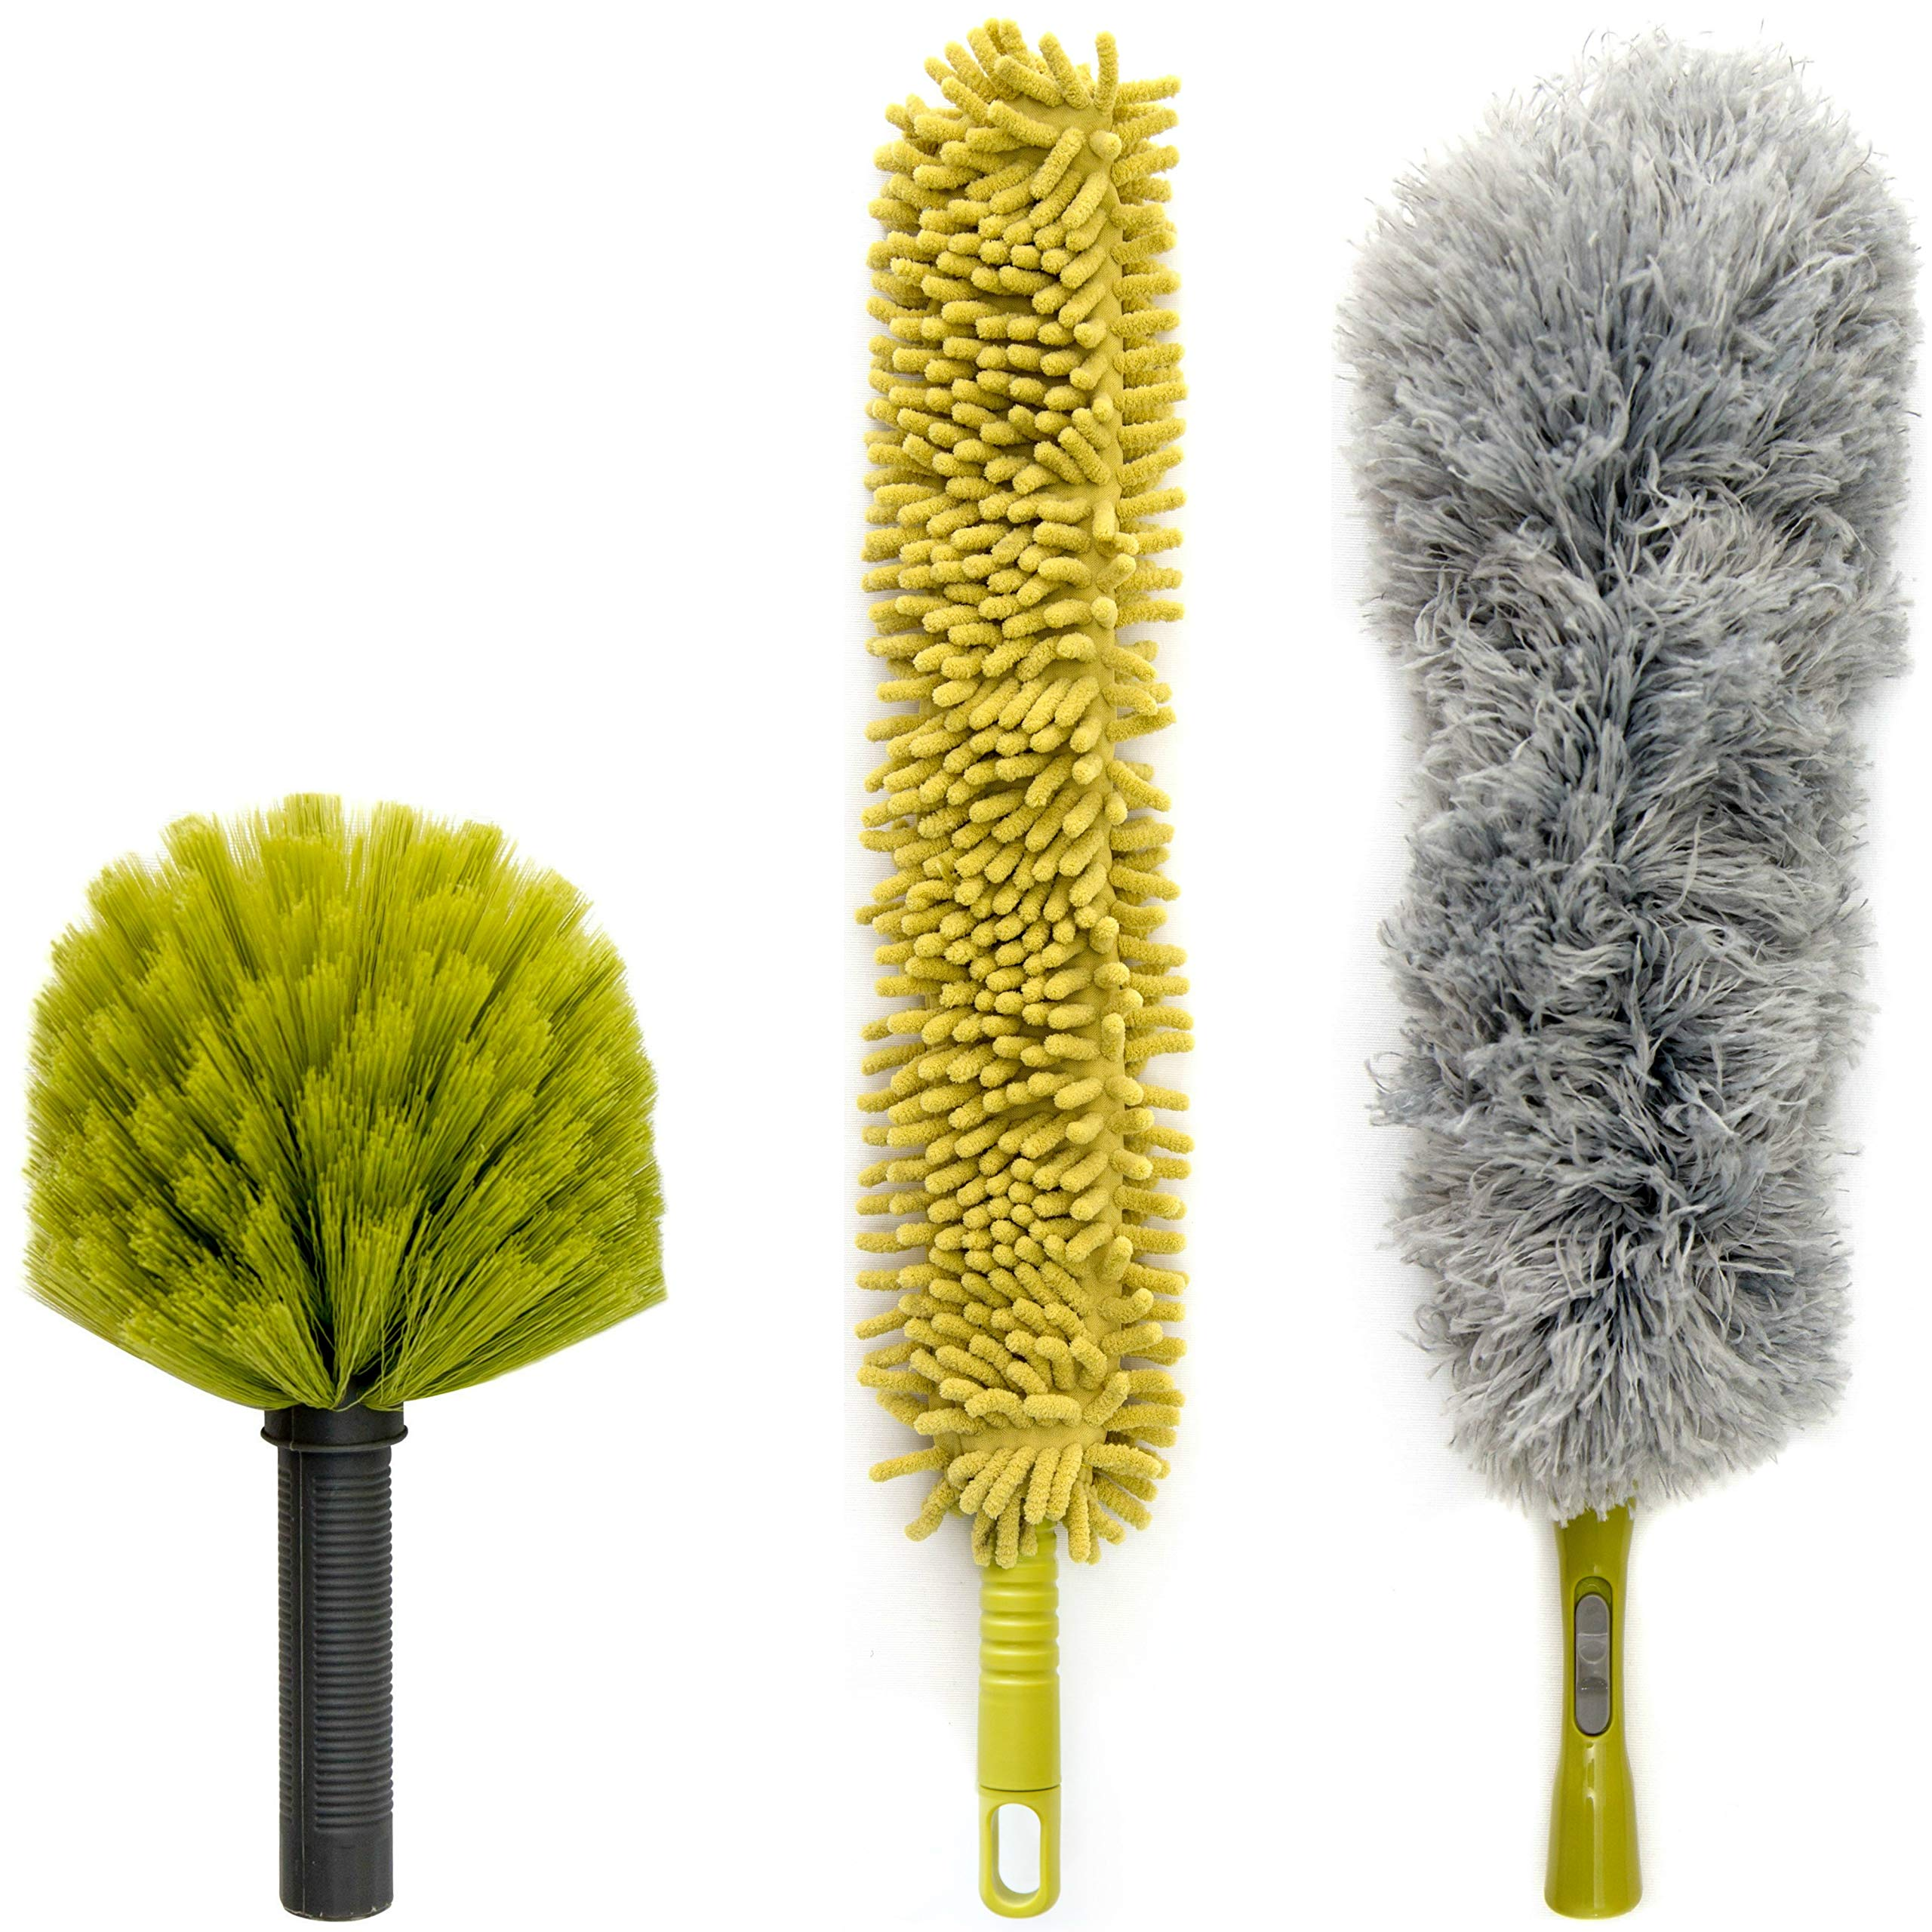 DocaPole Dusting Kit for Extension Pole or by Hand | Cleaning Kit Includes 3 Dusting Attachments | Cobweb Duster | Microfiber Feather Duster | Flexible Chenille Ceiling Fan Duster by DOCAZOO (Image #1)